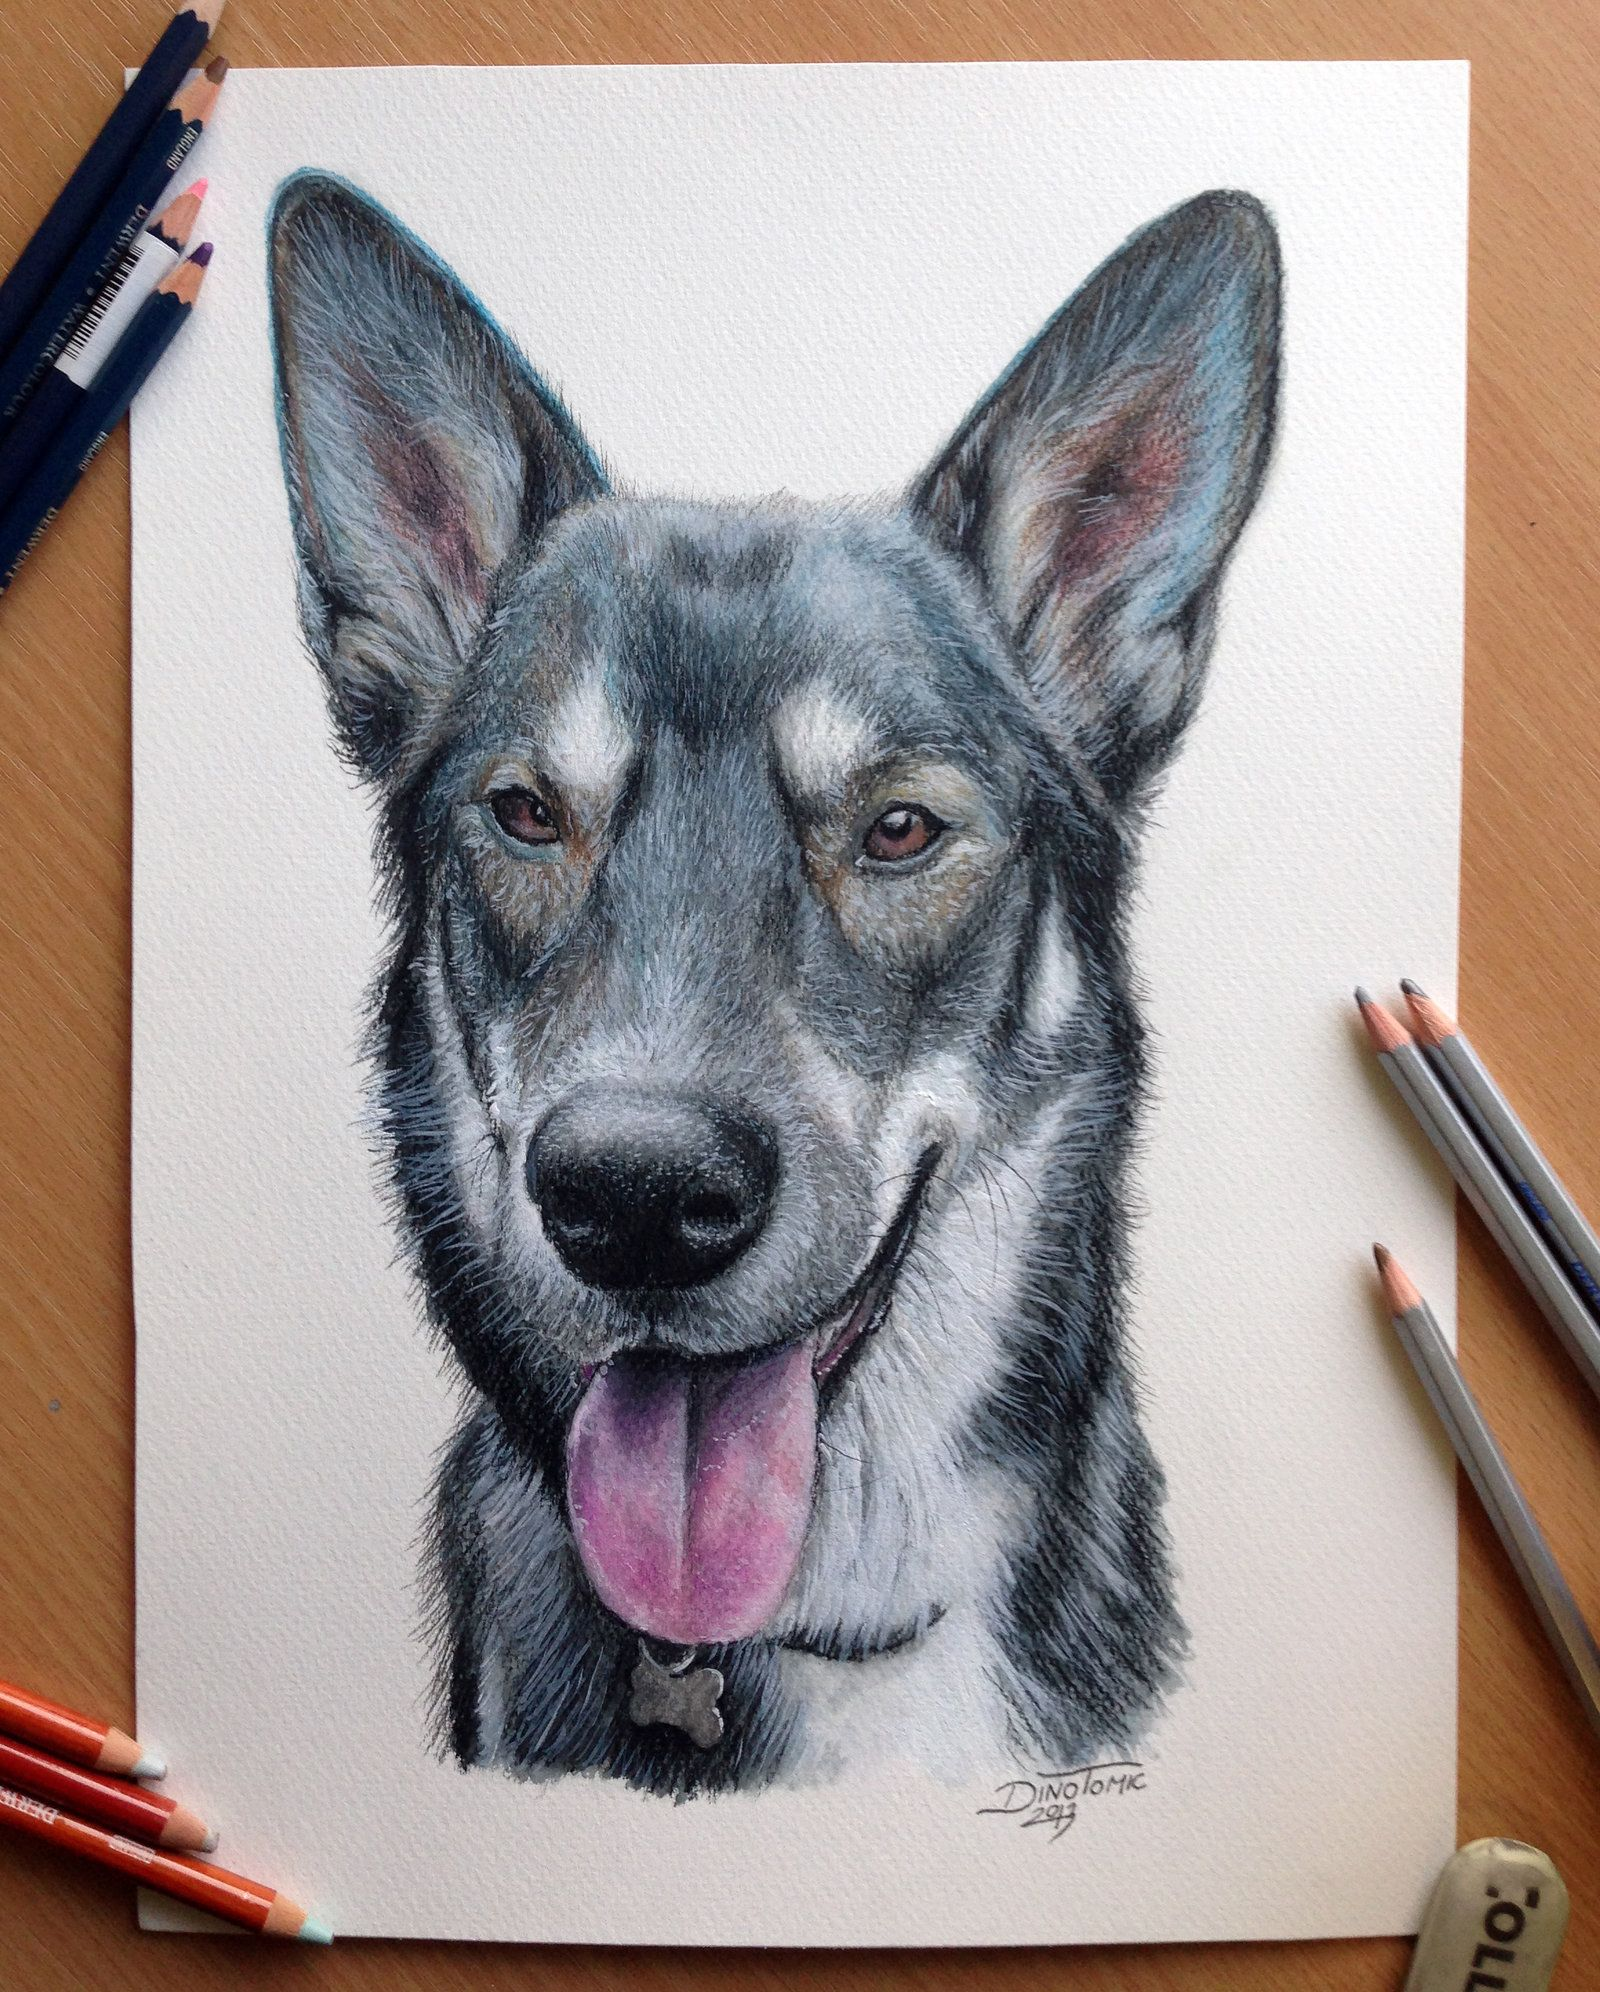 Pencil Drawing Of A Dog By Atomiccircusiantart On @deviantart